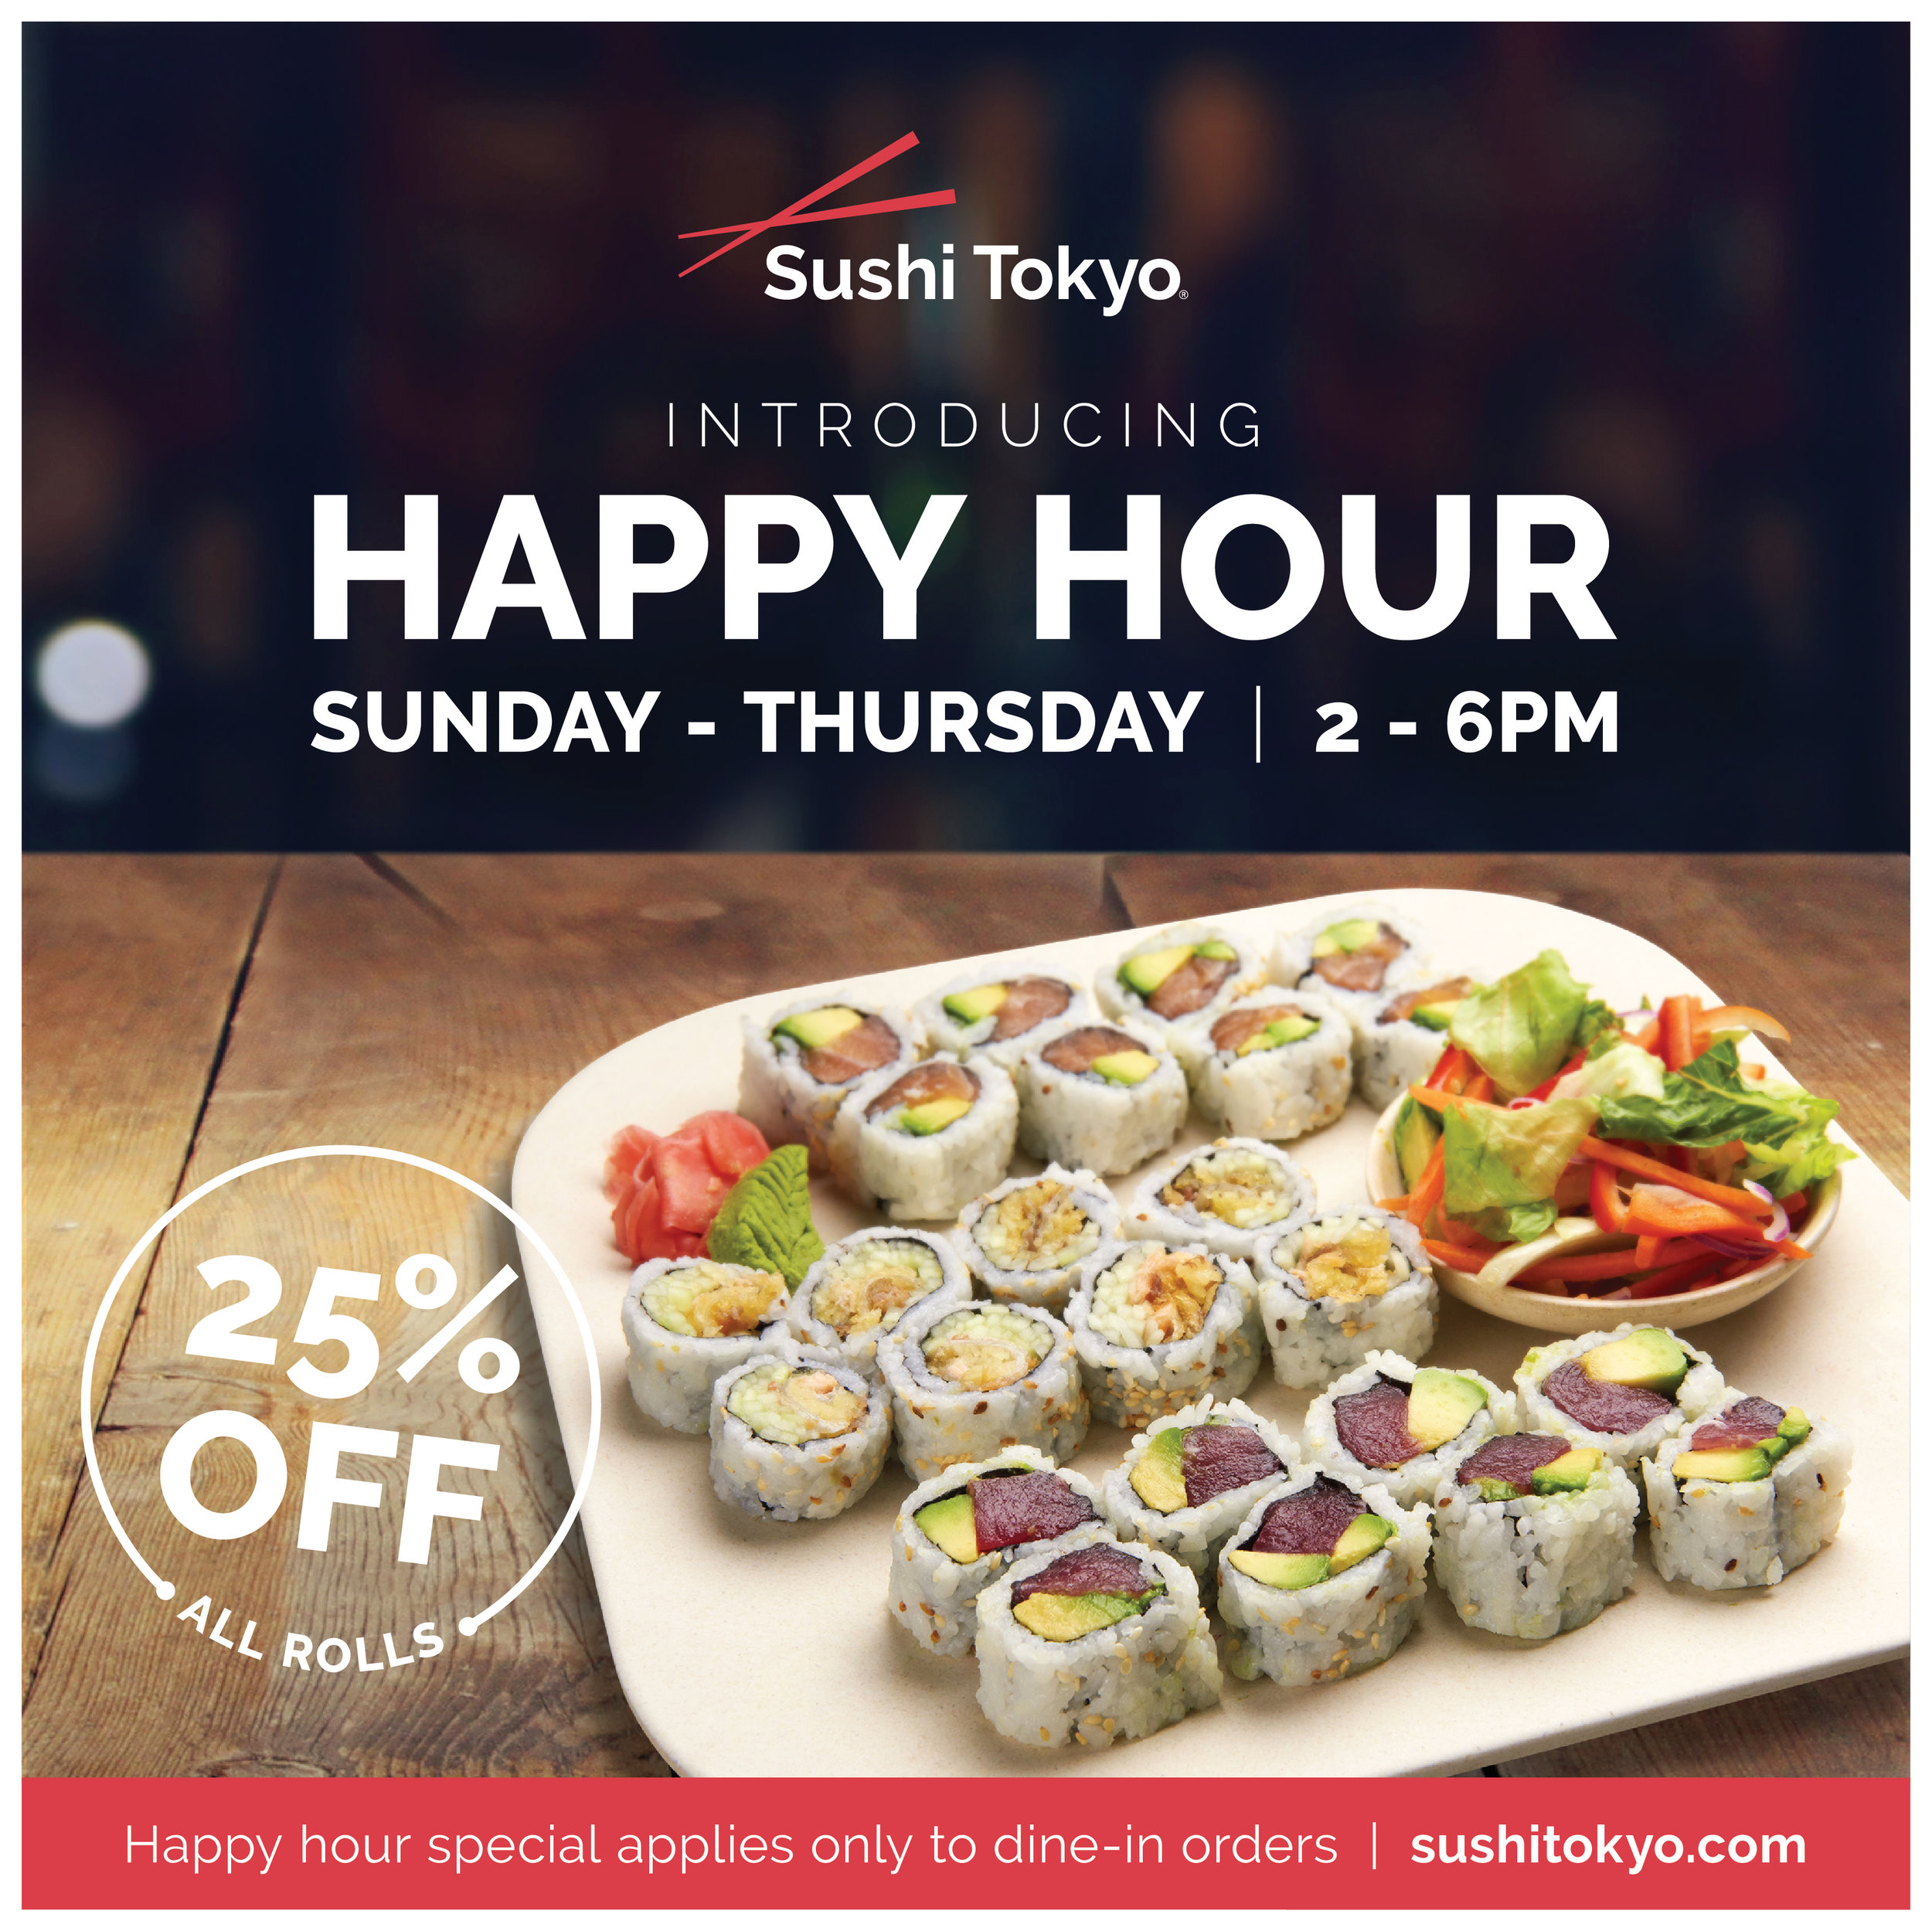 Happy Hour Sushi Tokyo Happy hour offerings from our sushi bar include traditional sushi rolls, our one and only crazy irishman roll, and a variety of raw fish plates. happy hour sushi tokyo